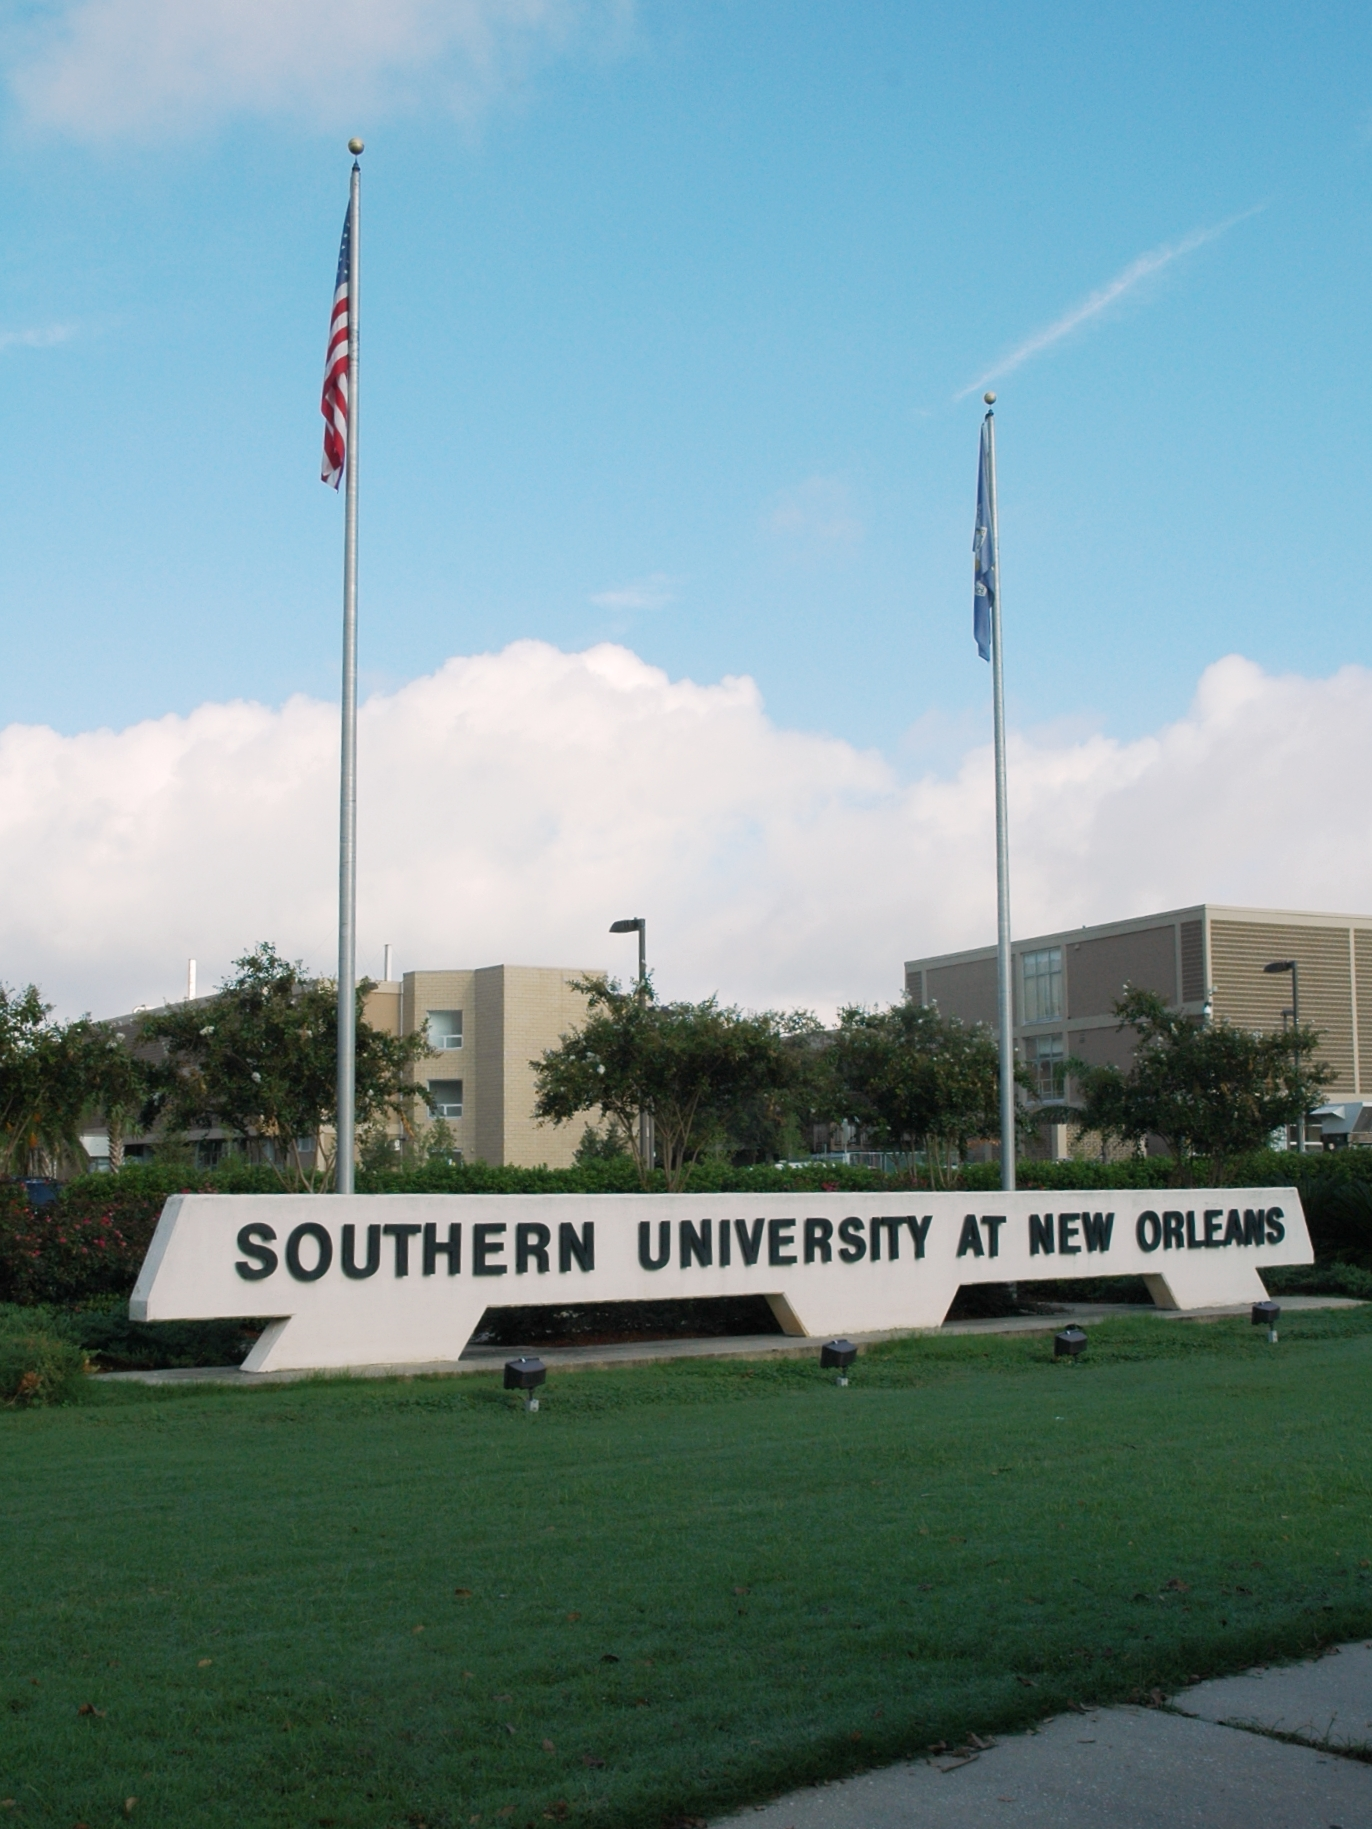 Southern University at New Orleans - Wikipedia